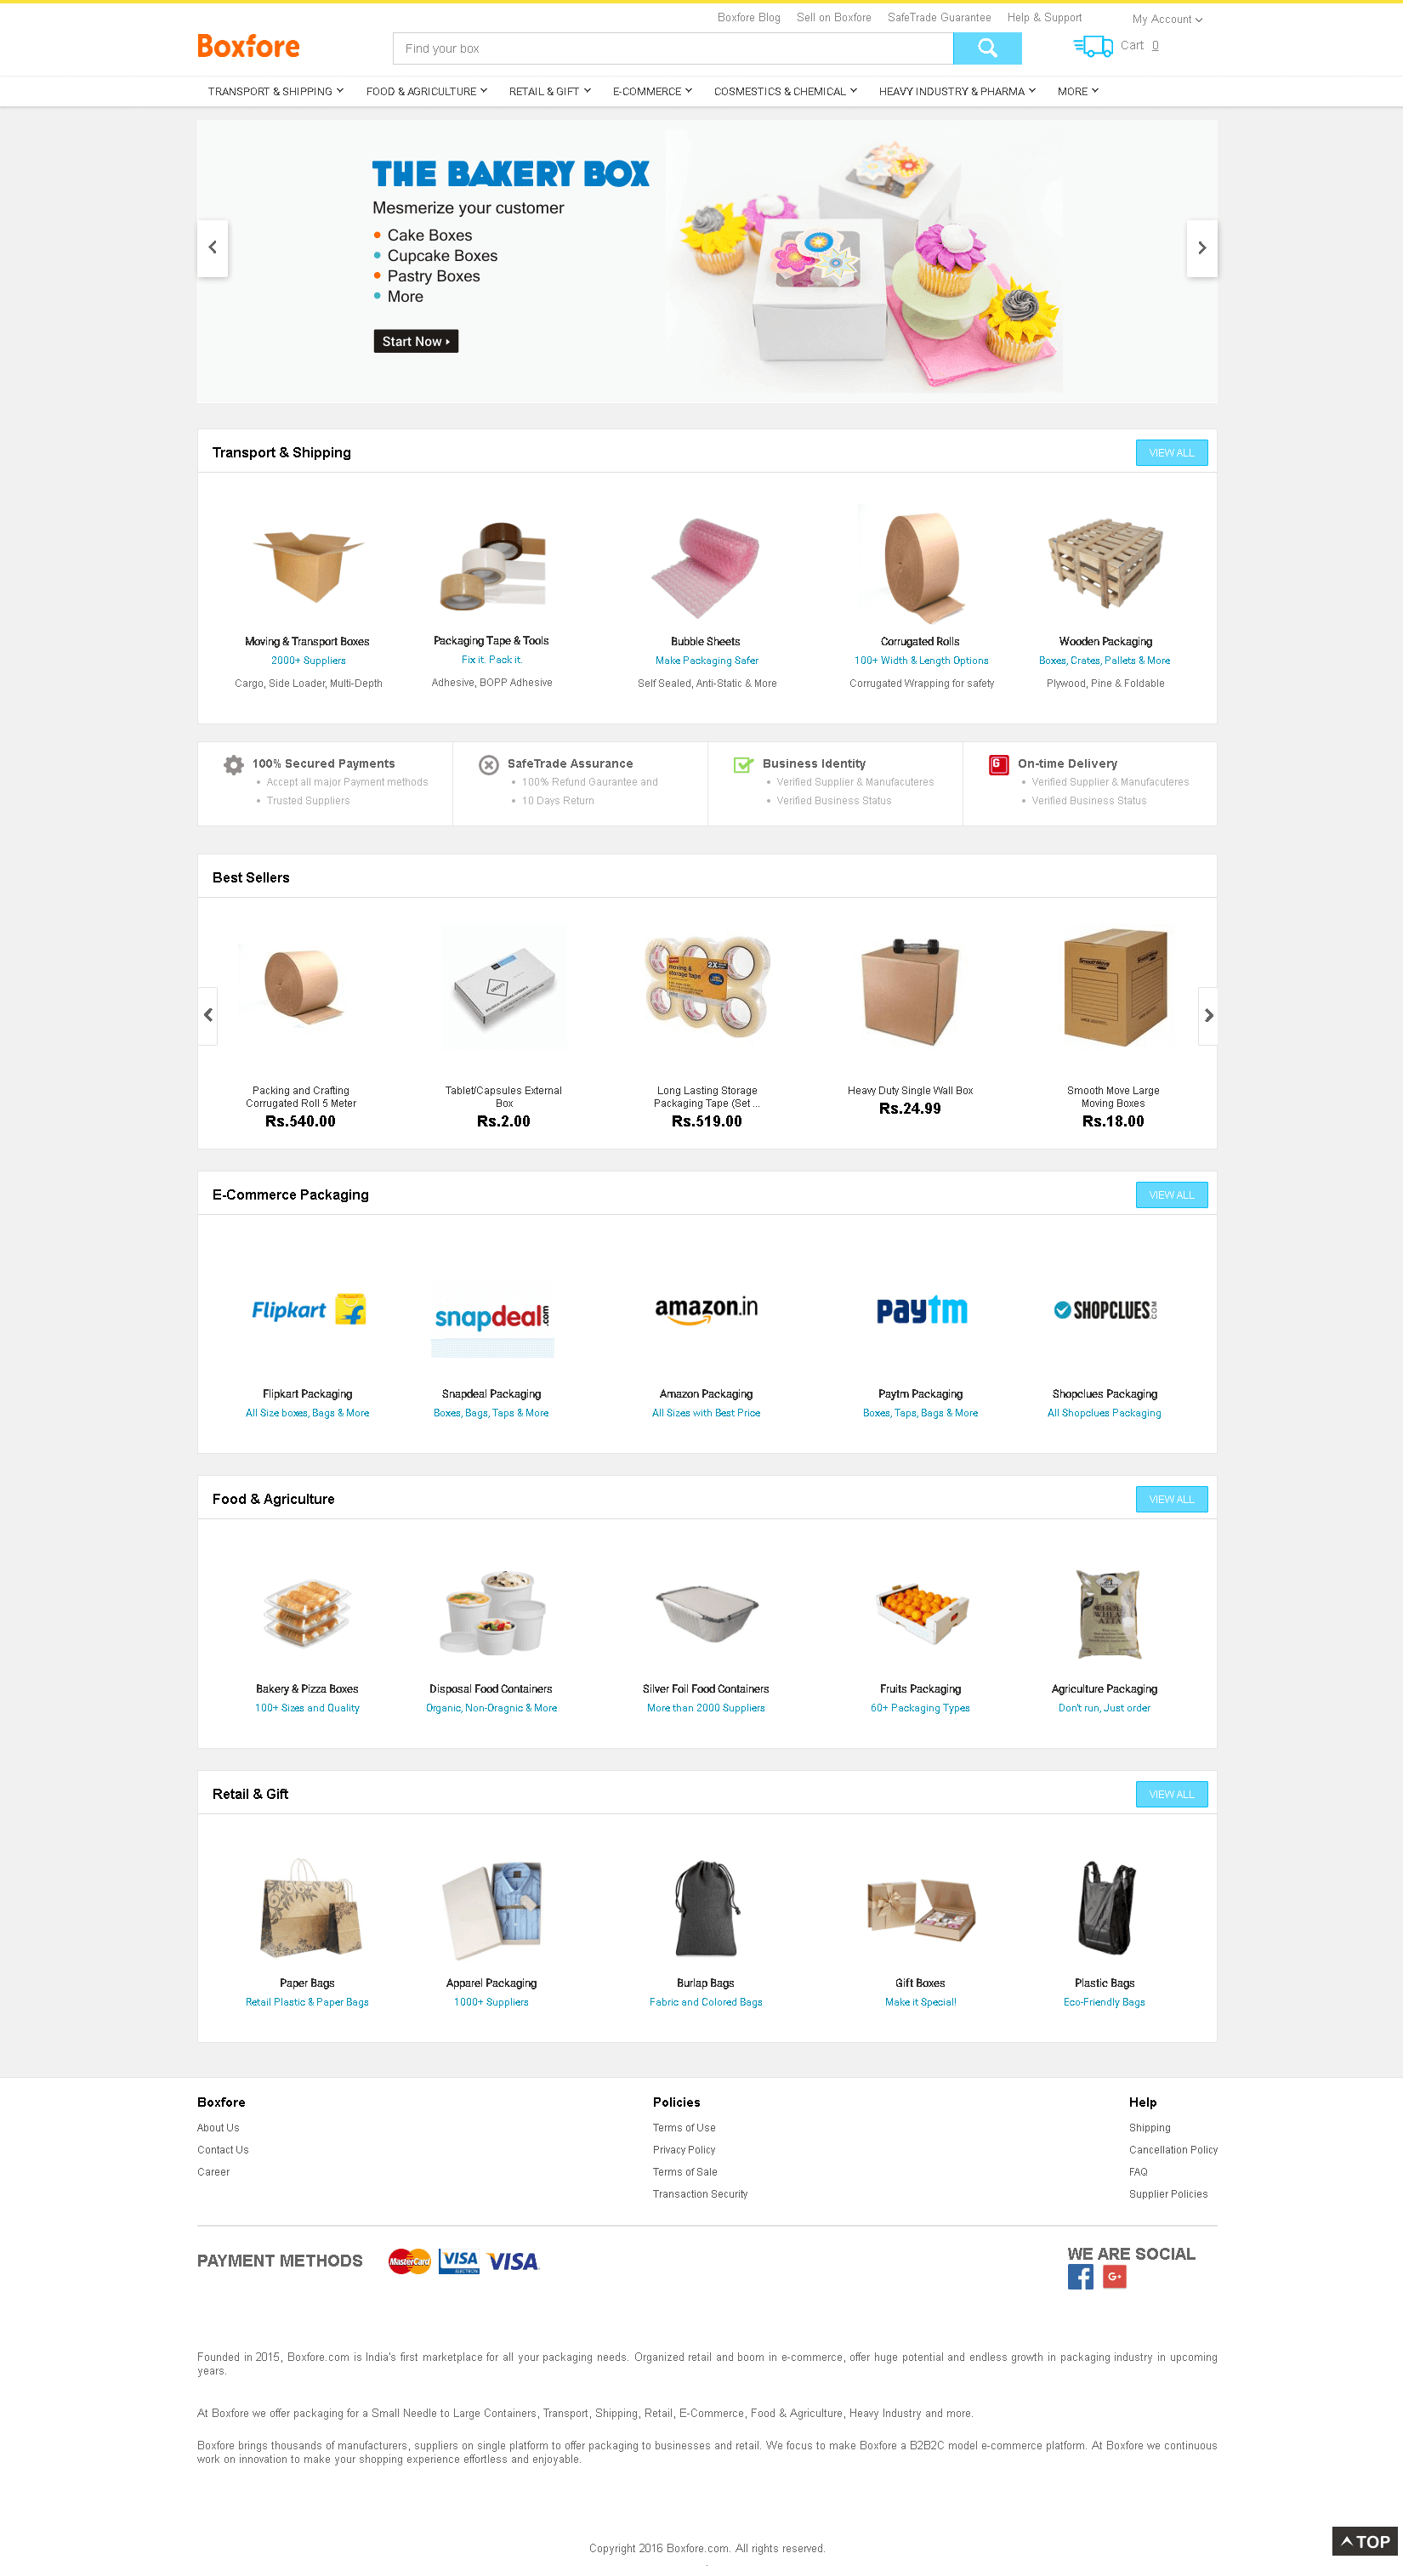 Boxfore.com: Boxes, Food, Retail, Heavy Industry Packaing...